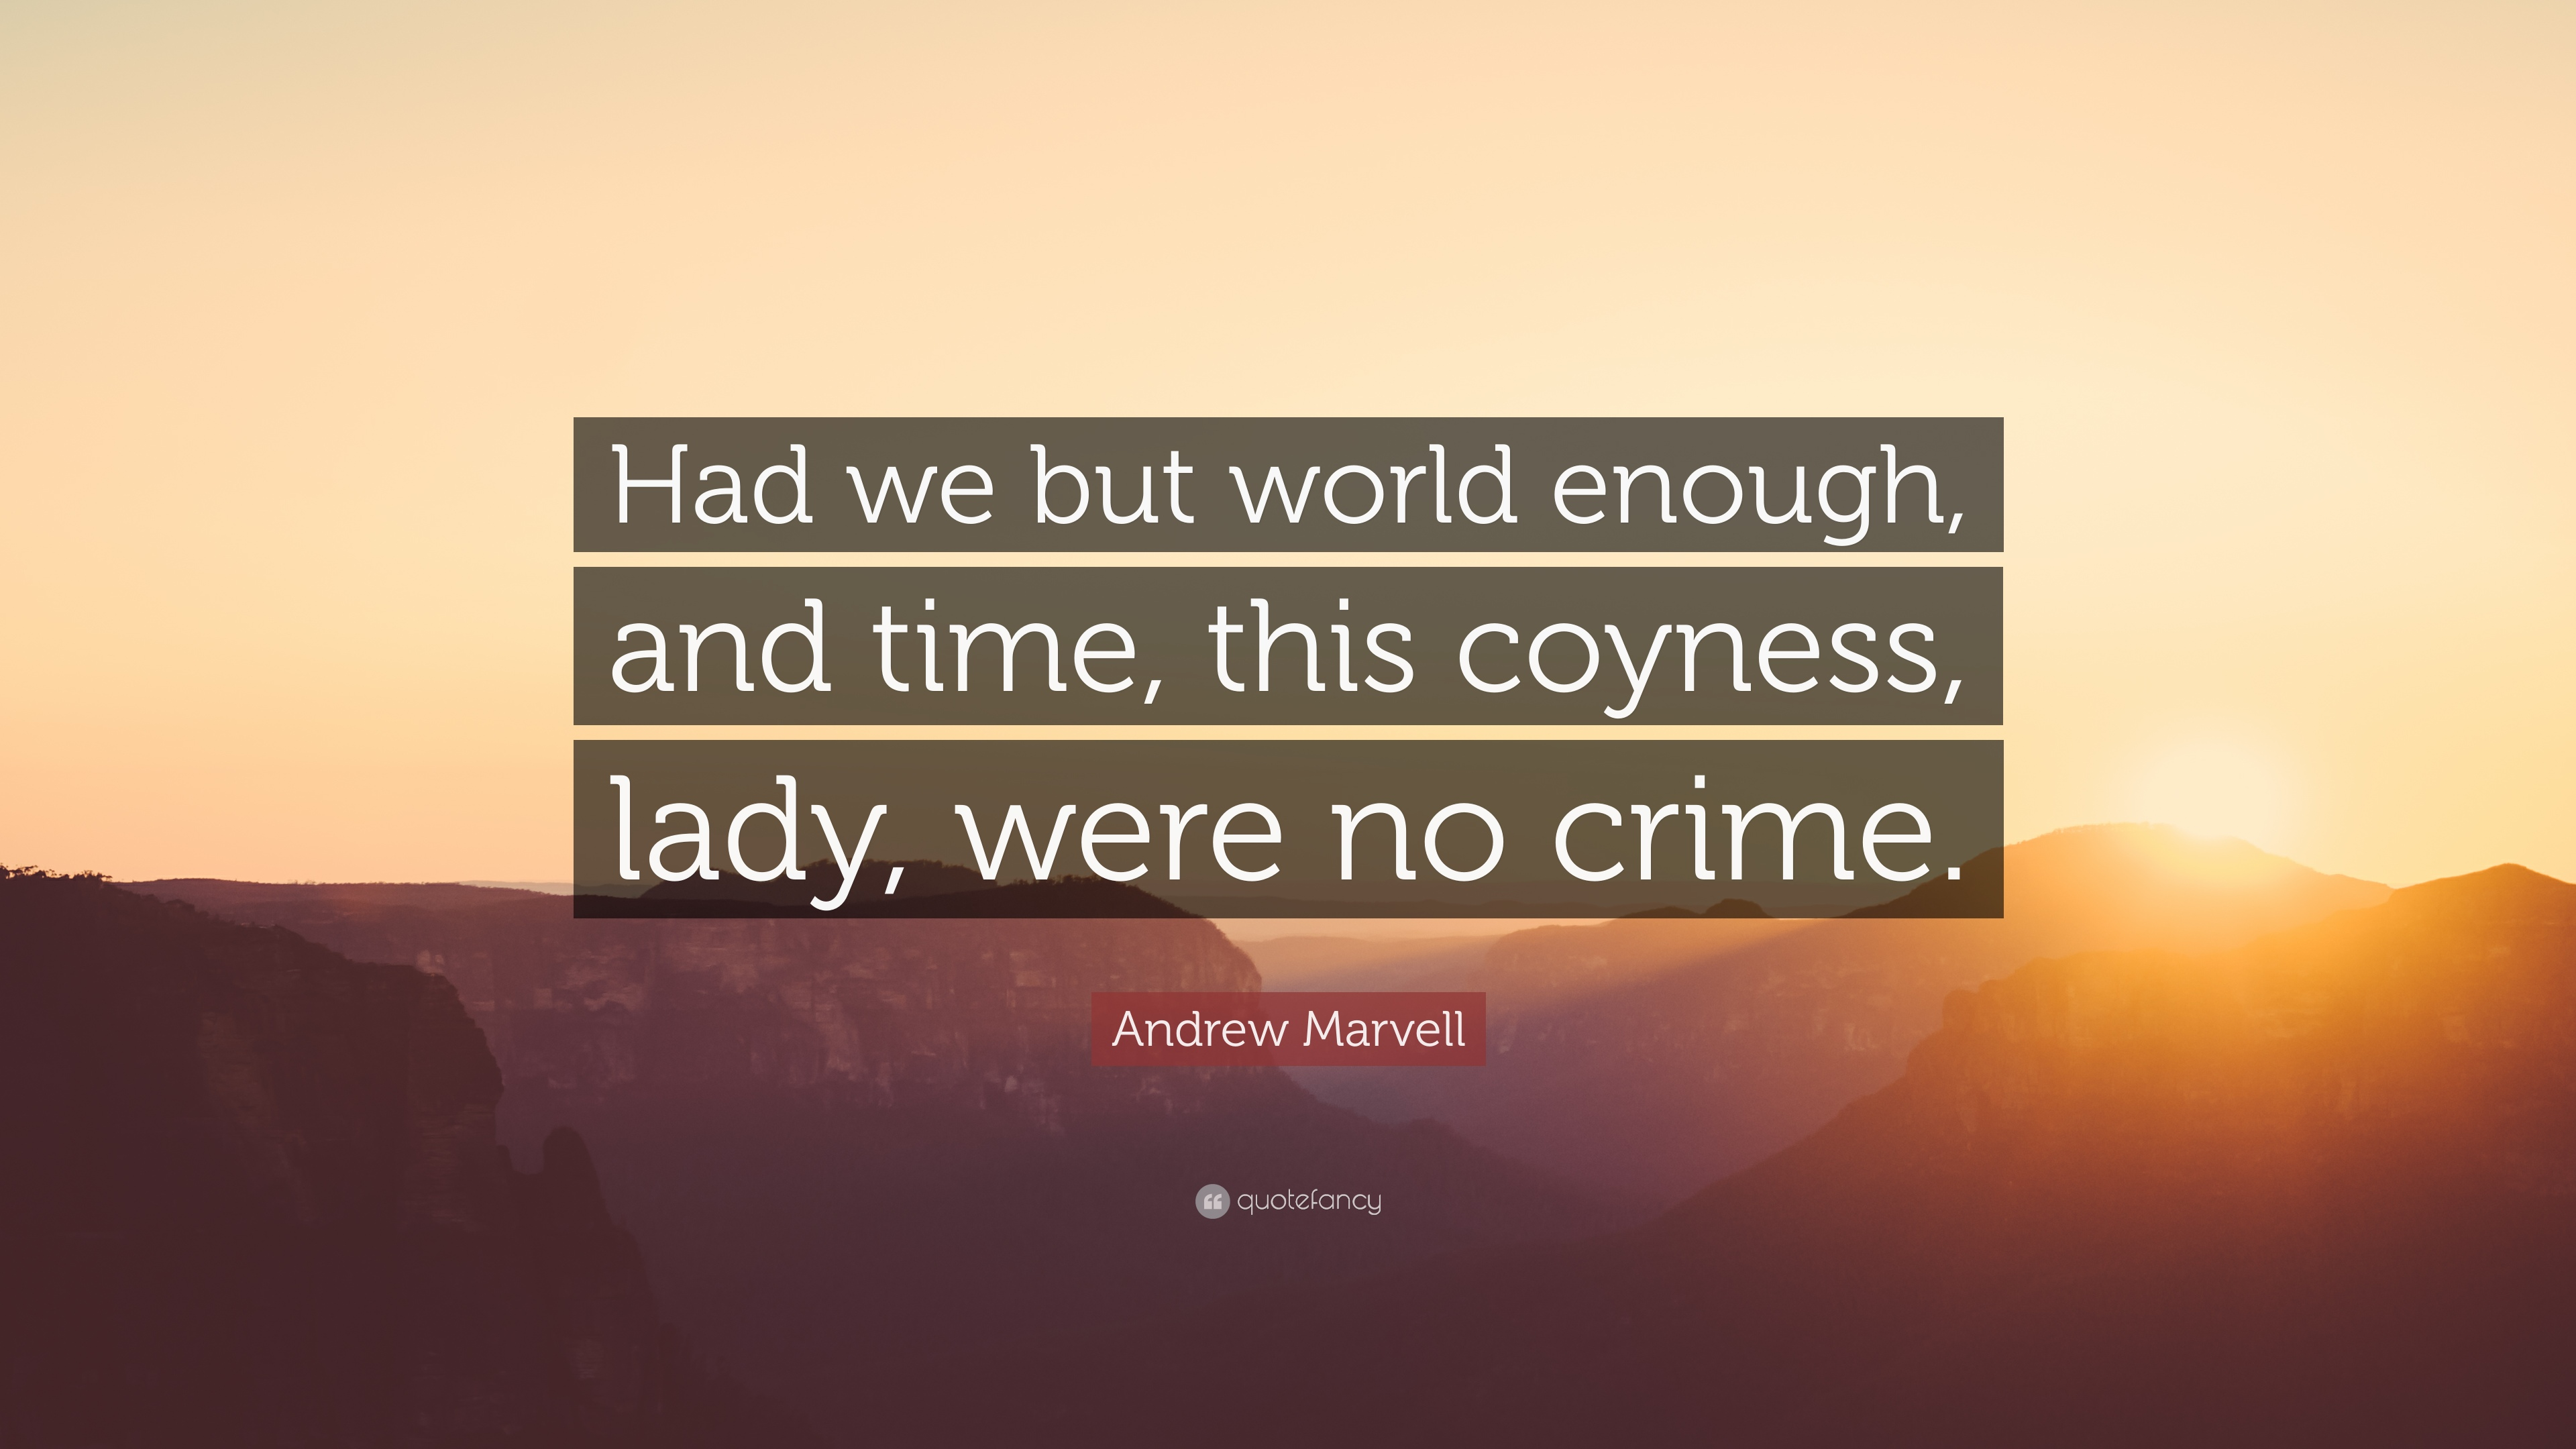 had we but world enough, and time, / this coyness, lady, were no crime